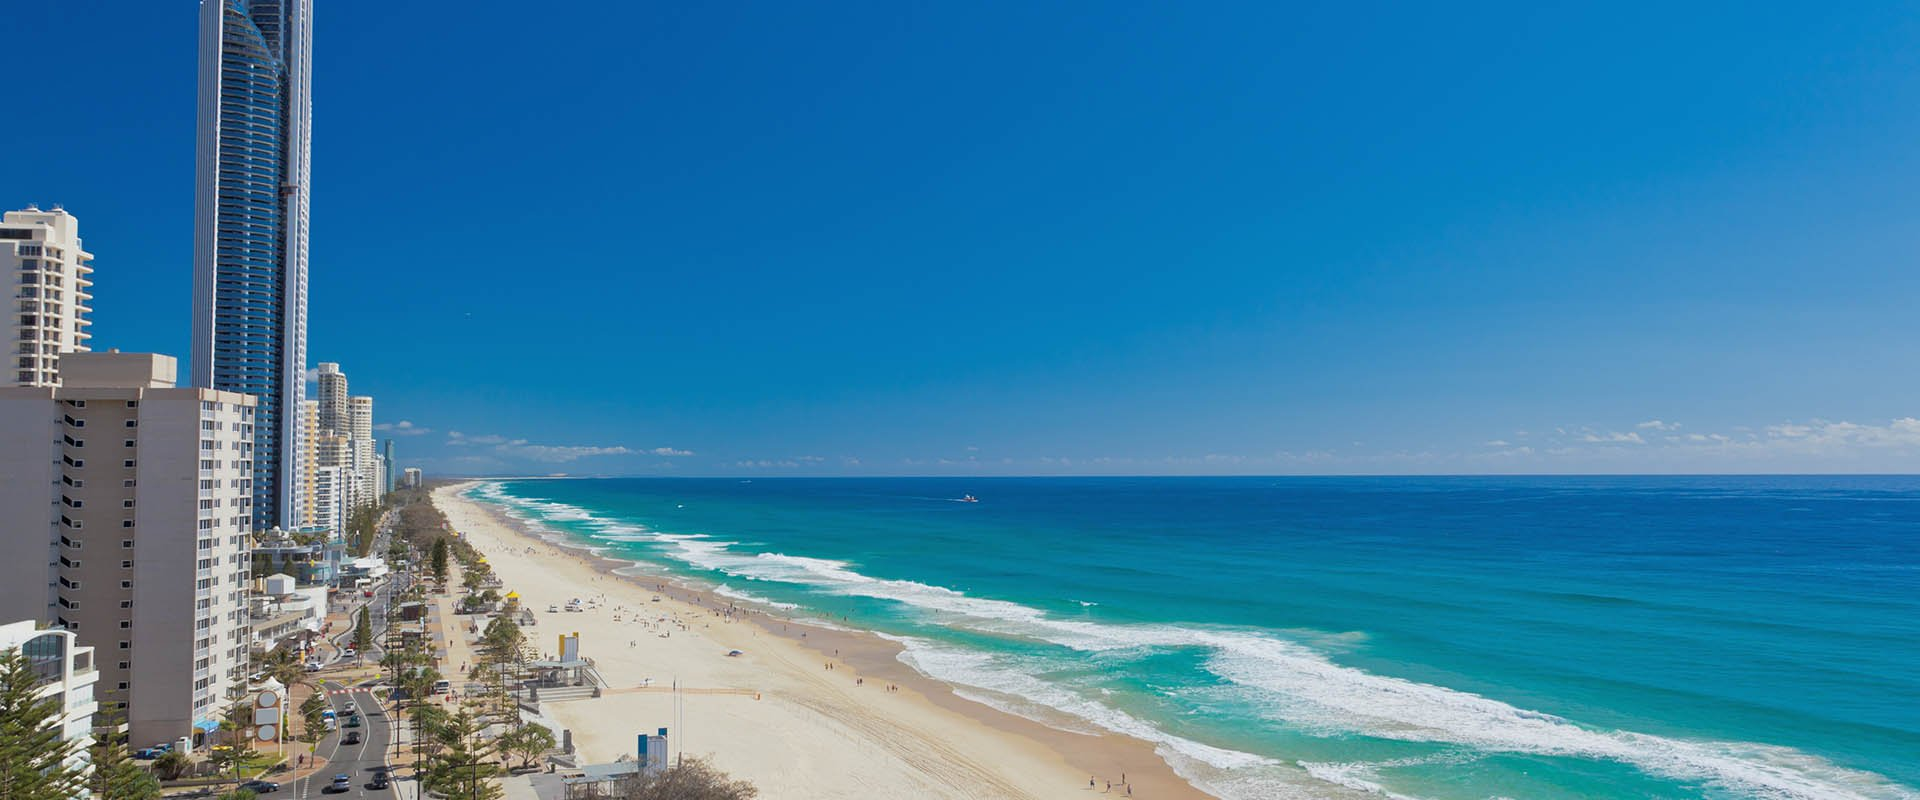 Queensland Public Holidays 2016 and 2017